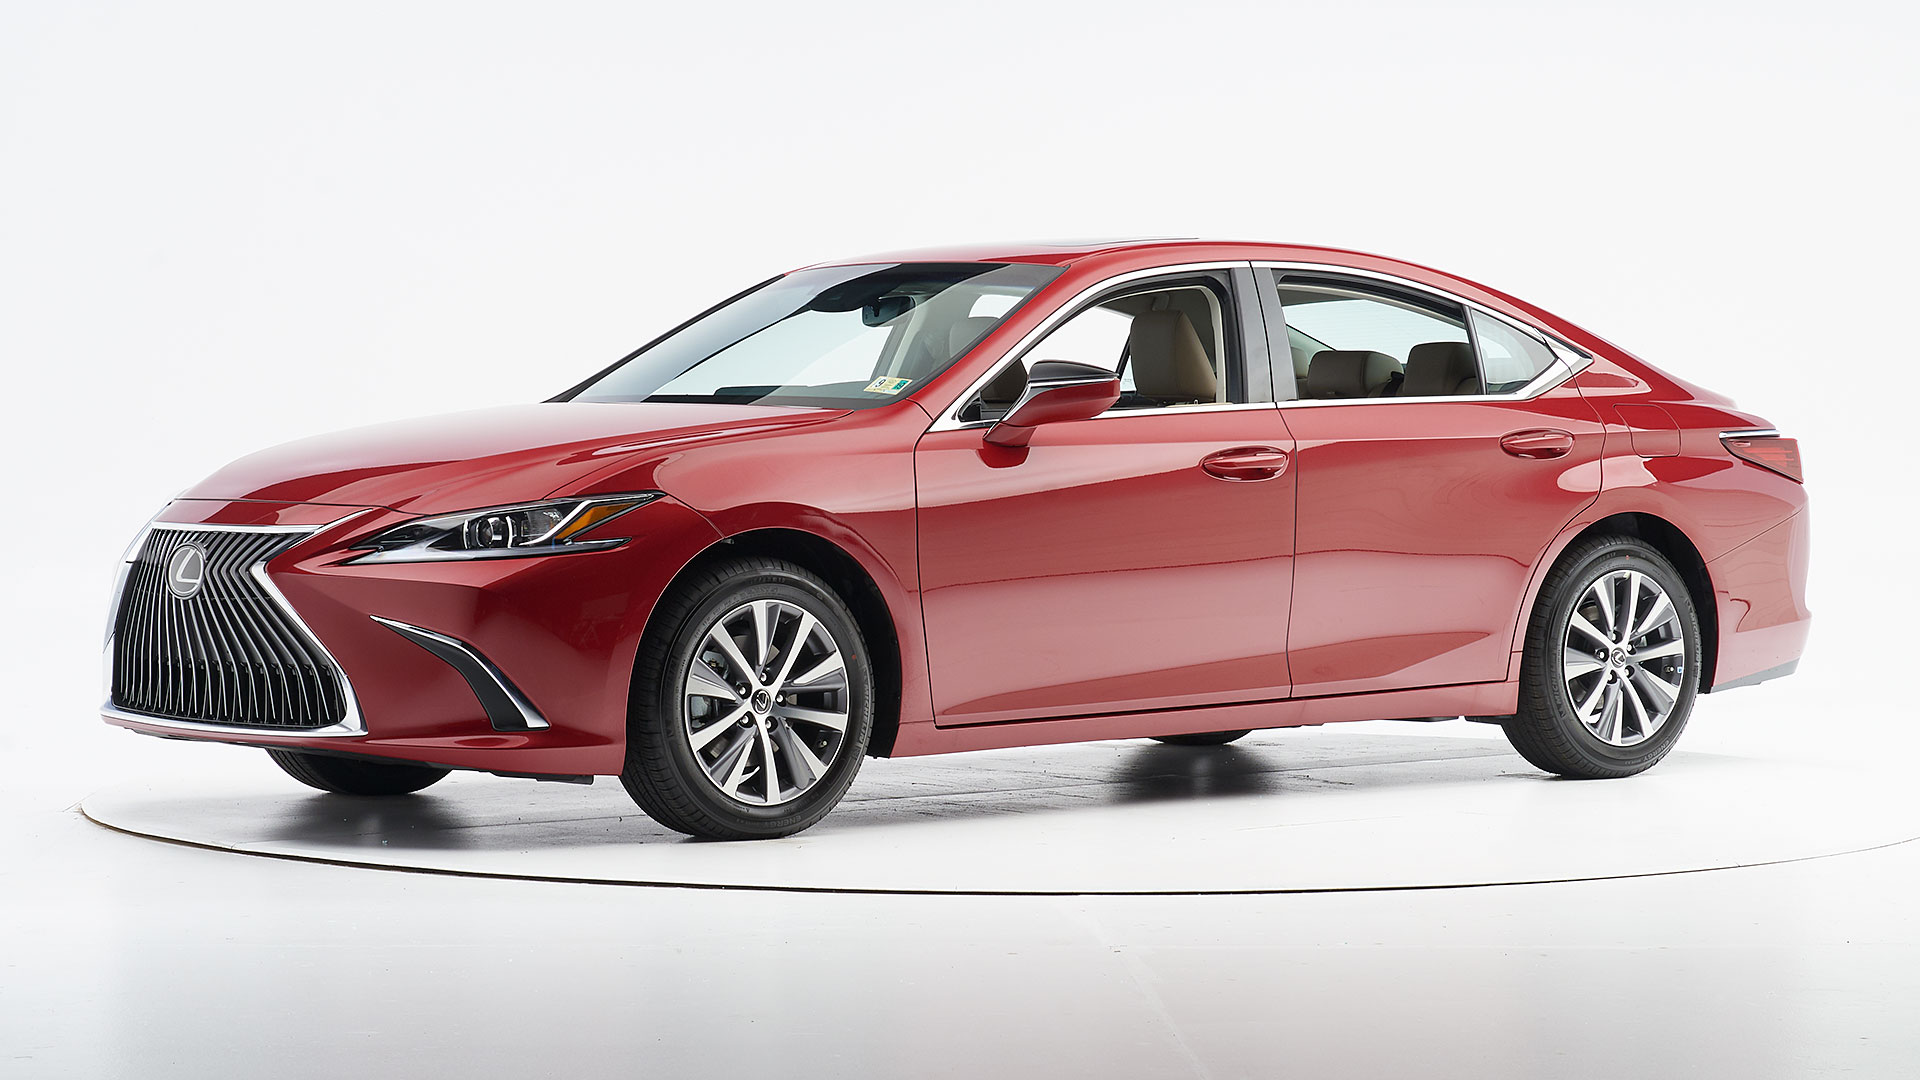 2019 Lexus ES 350 4-door sedan